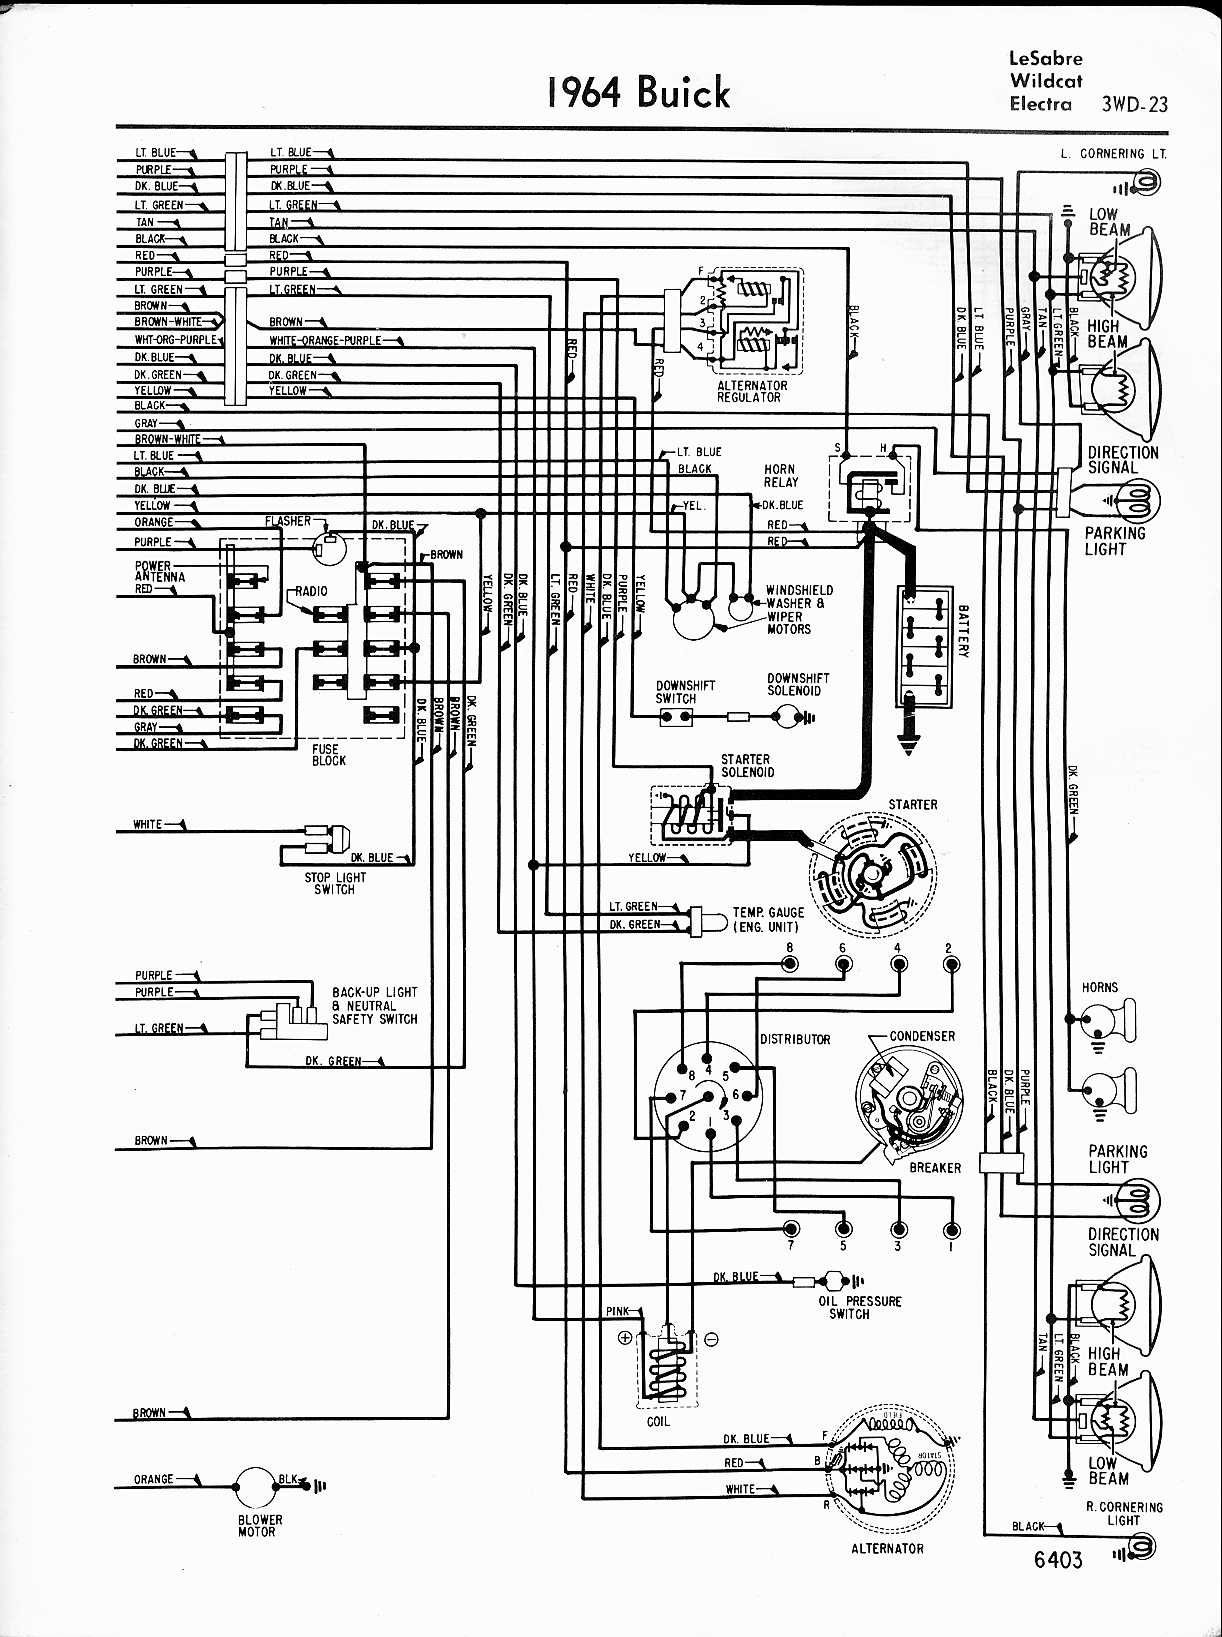 MWireBuic65_3WD 023 buick wiring diagrams 1957 1965 2000 buick century headlight wire diagram at letsshop.co